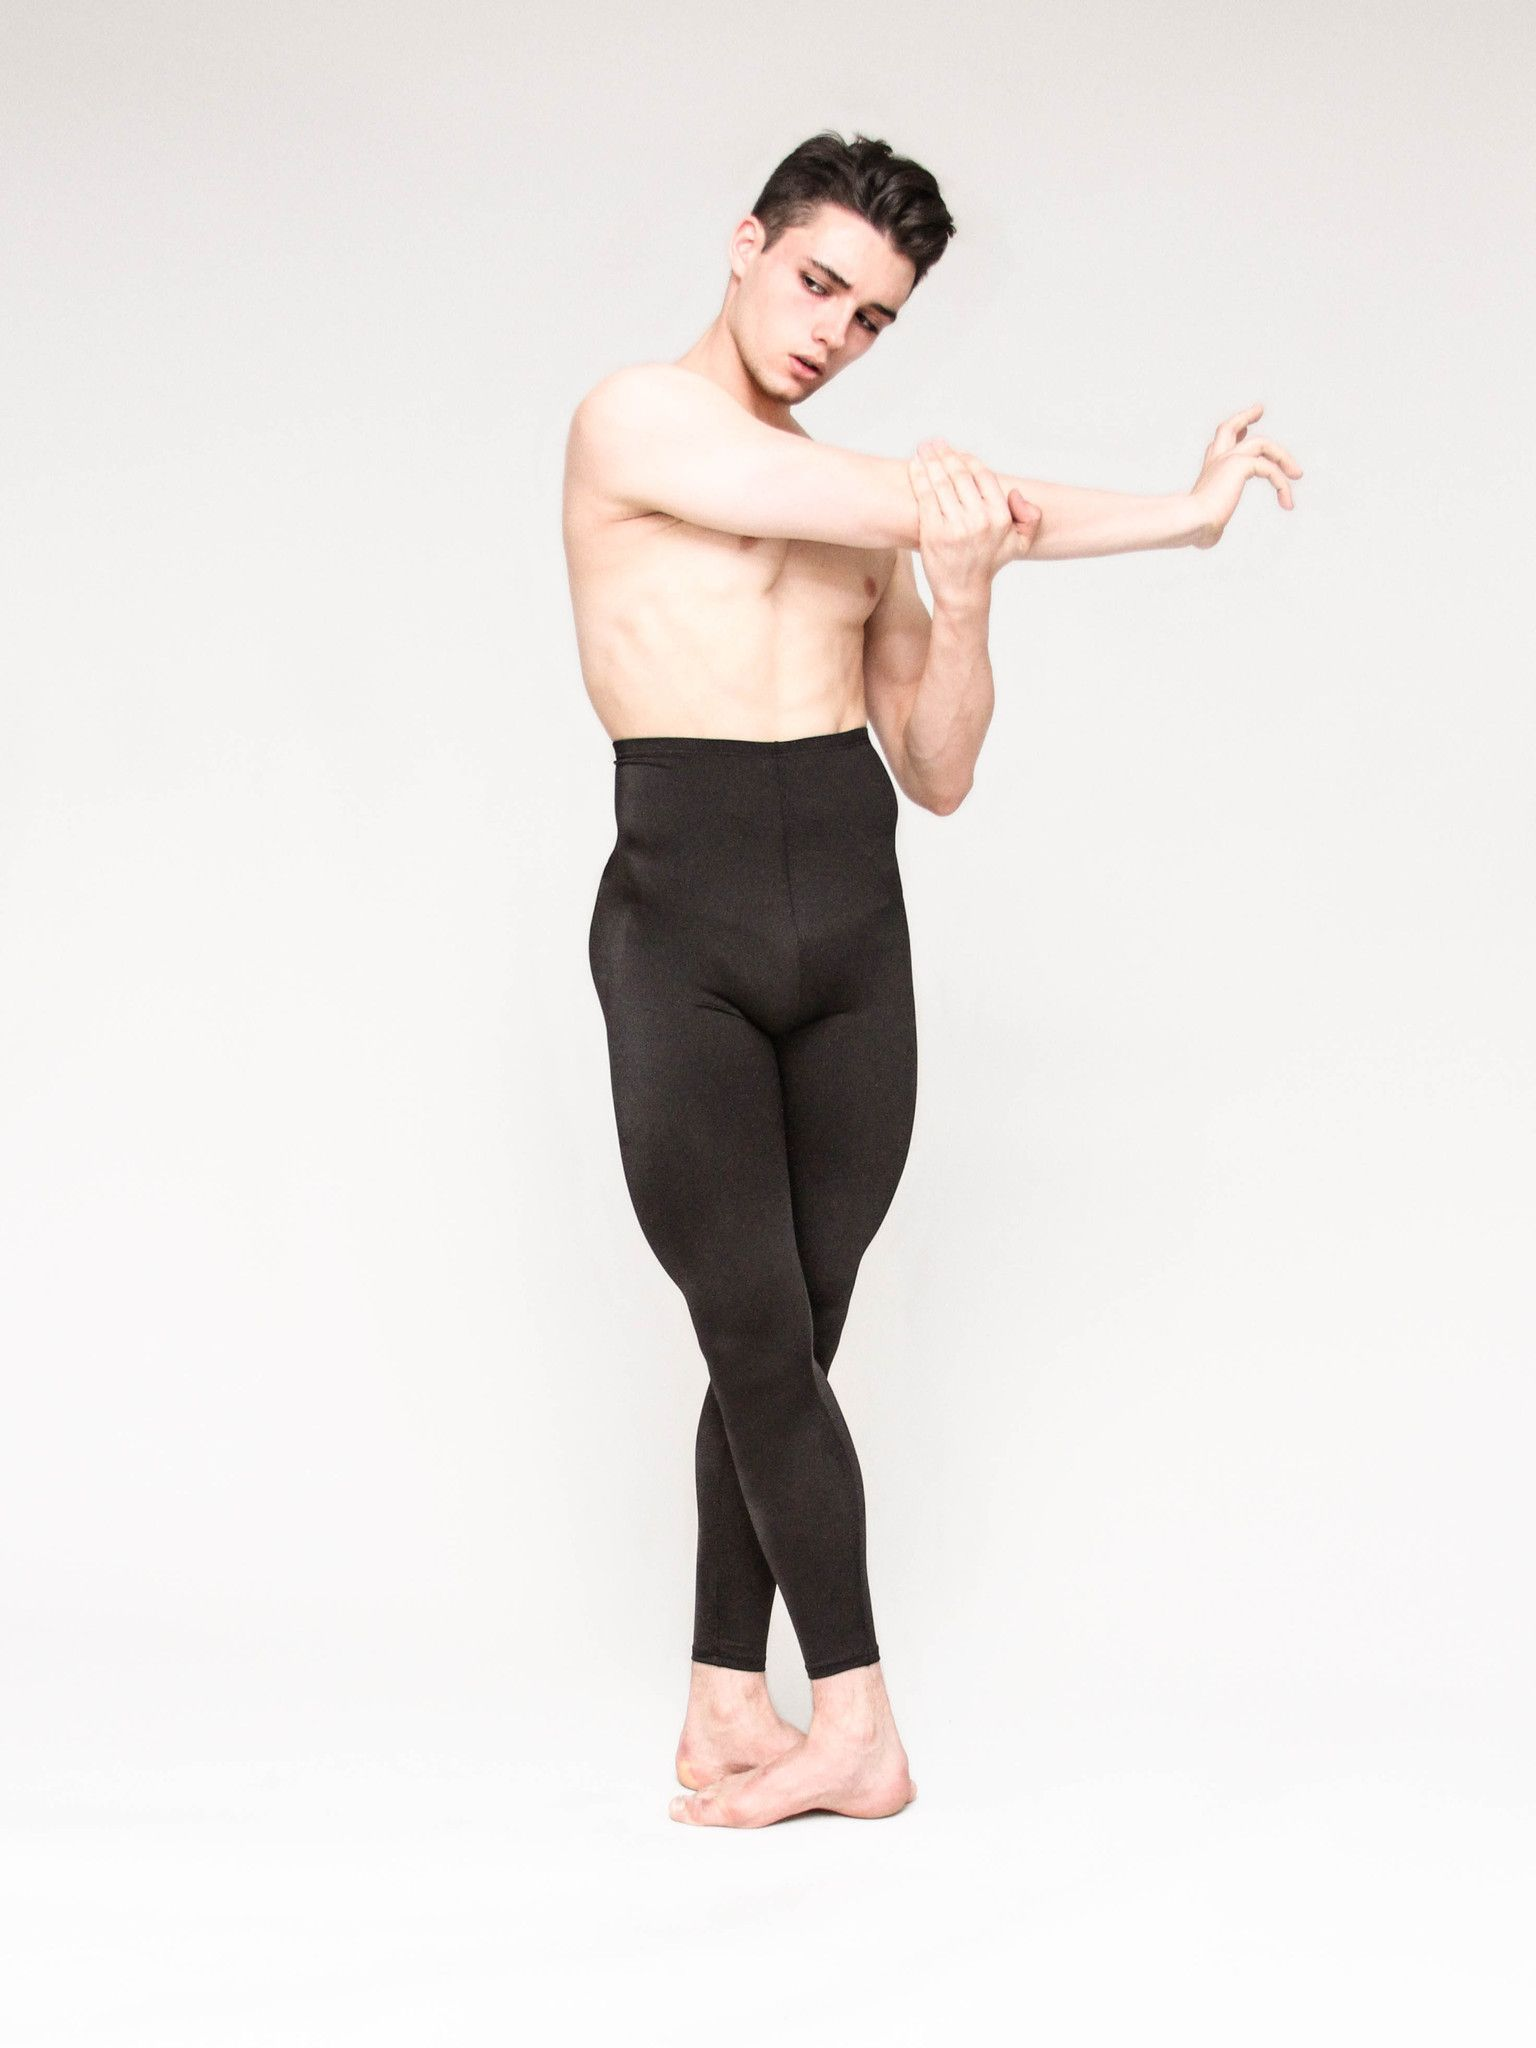 160c9a61d647e Tricot Footless Tights - MENS | Men's and Boys' Dancewear ...